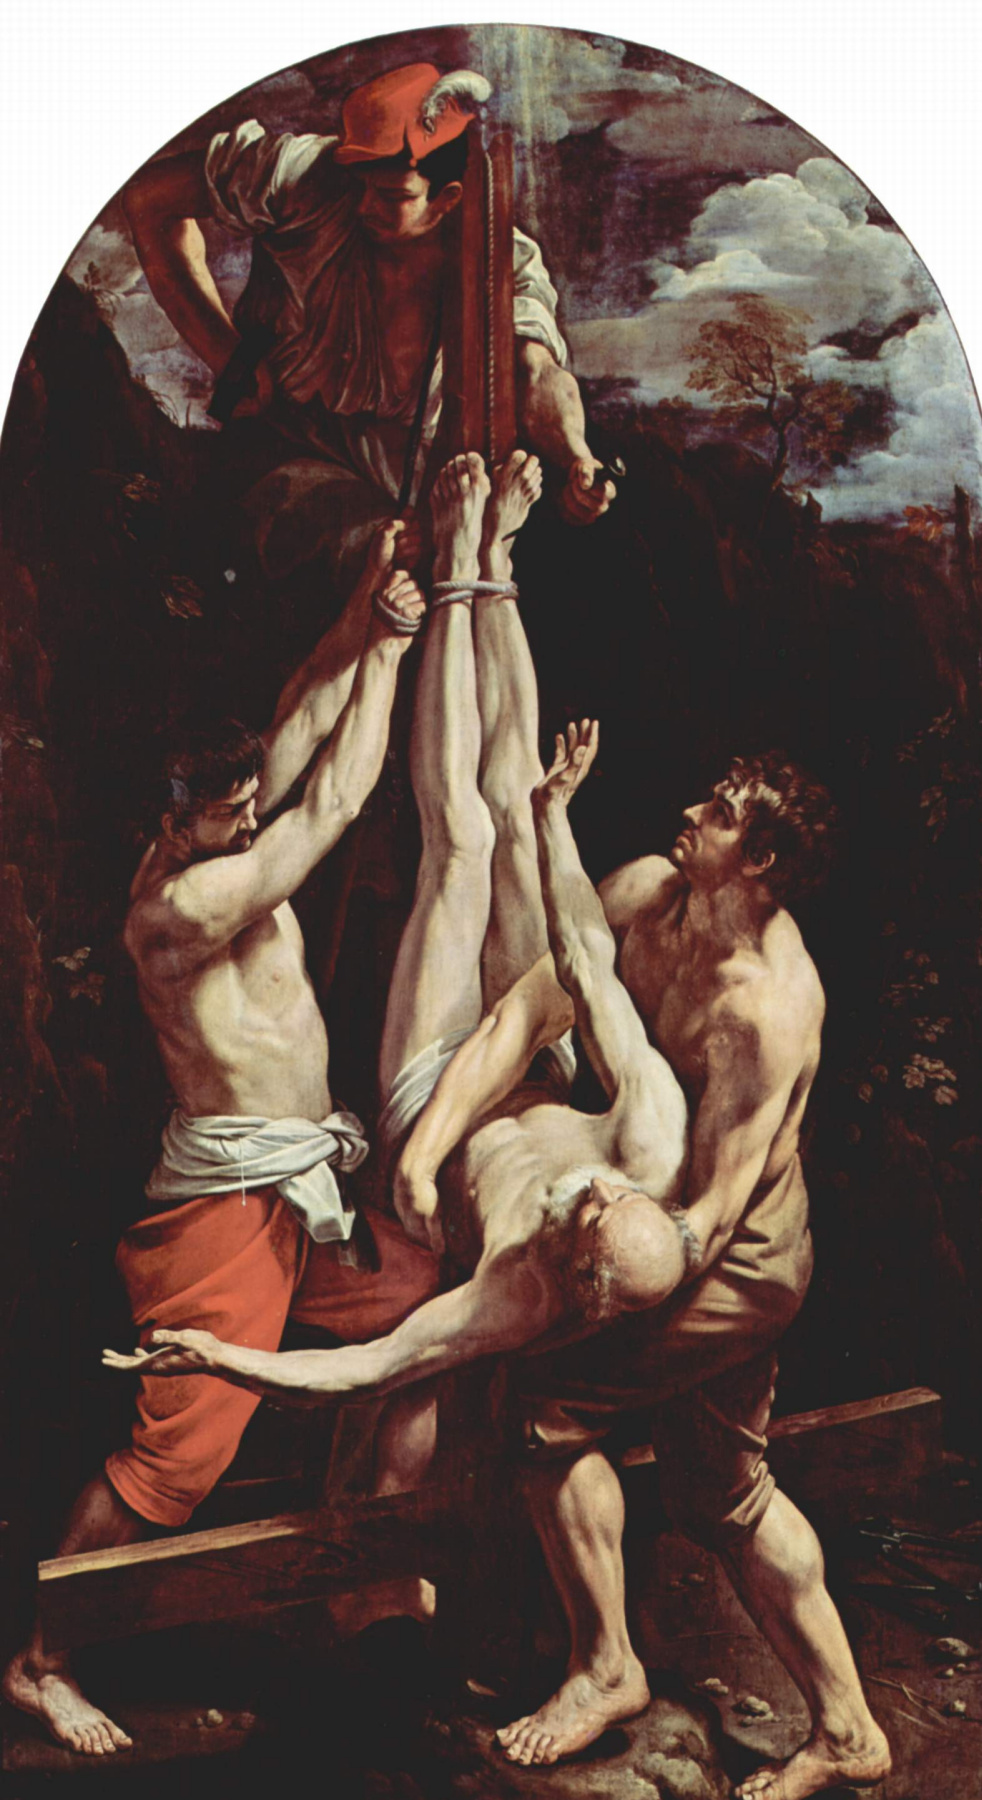 Guido Reni. The crucifixion of the Apostle Peter